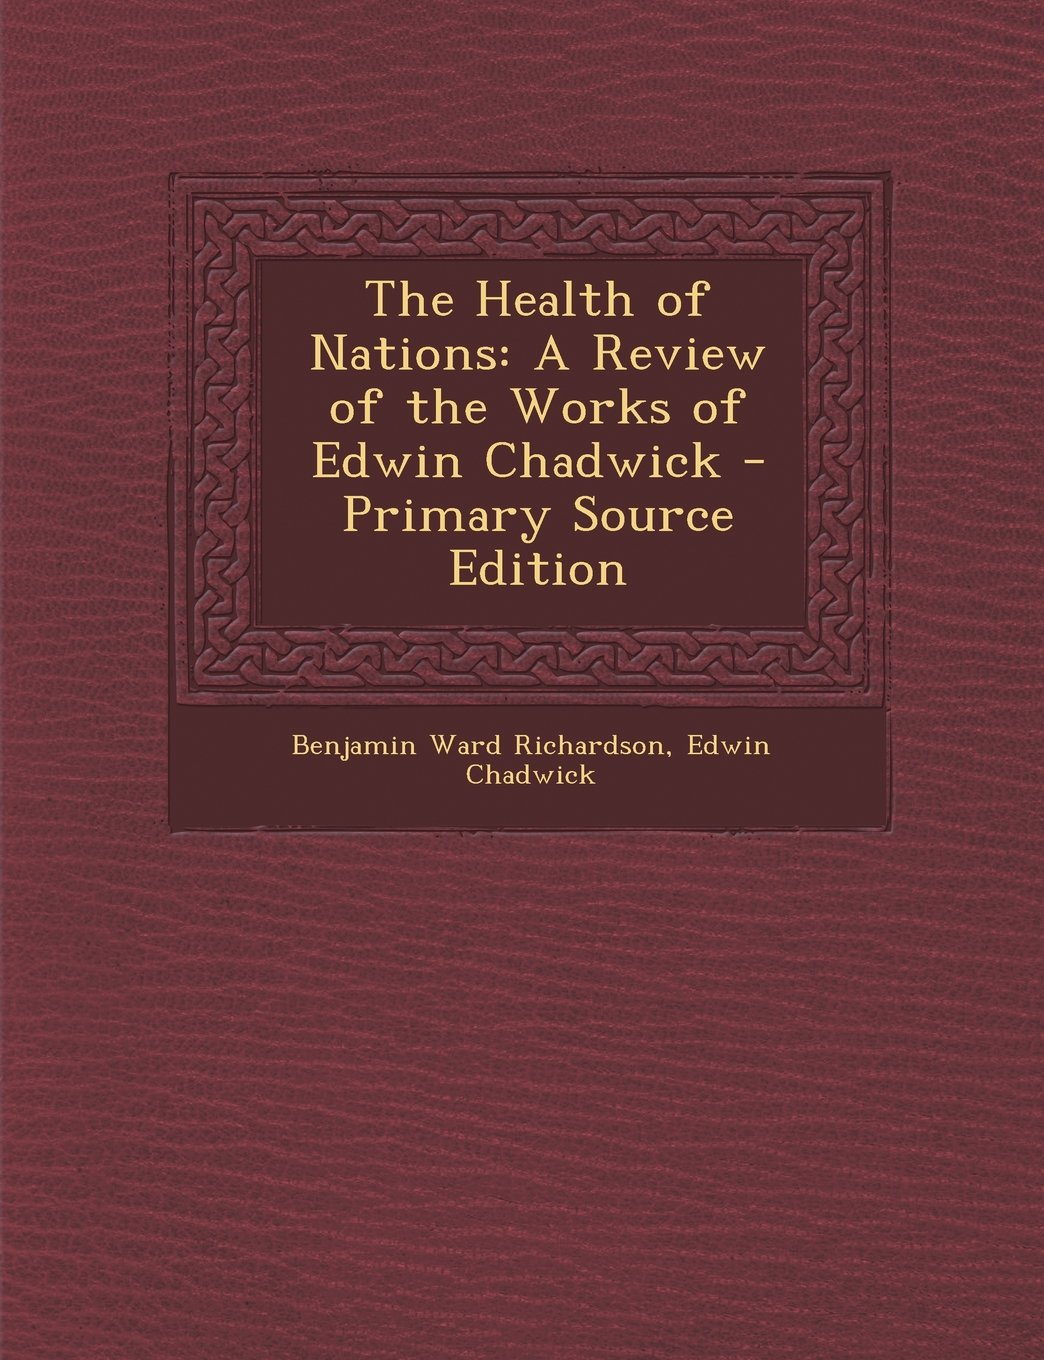 The Health of Nations: A Review of the Works of Edwin Chadwick - Primary Source Edition PDF